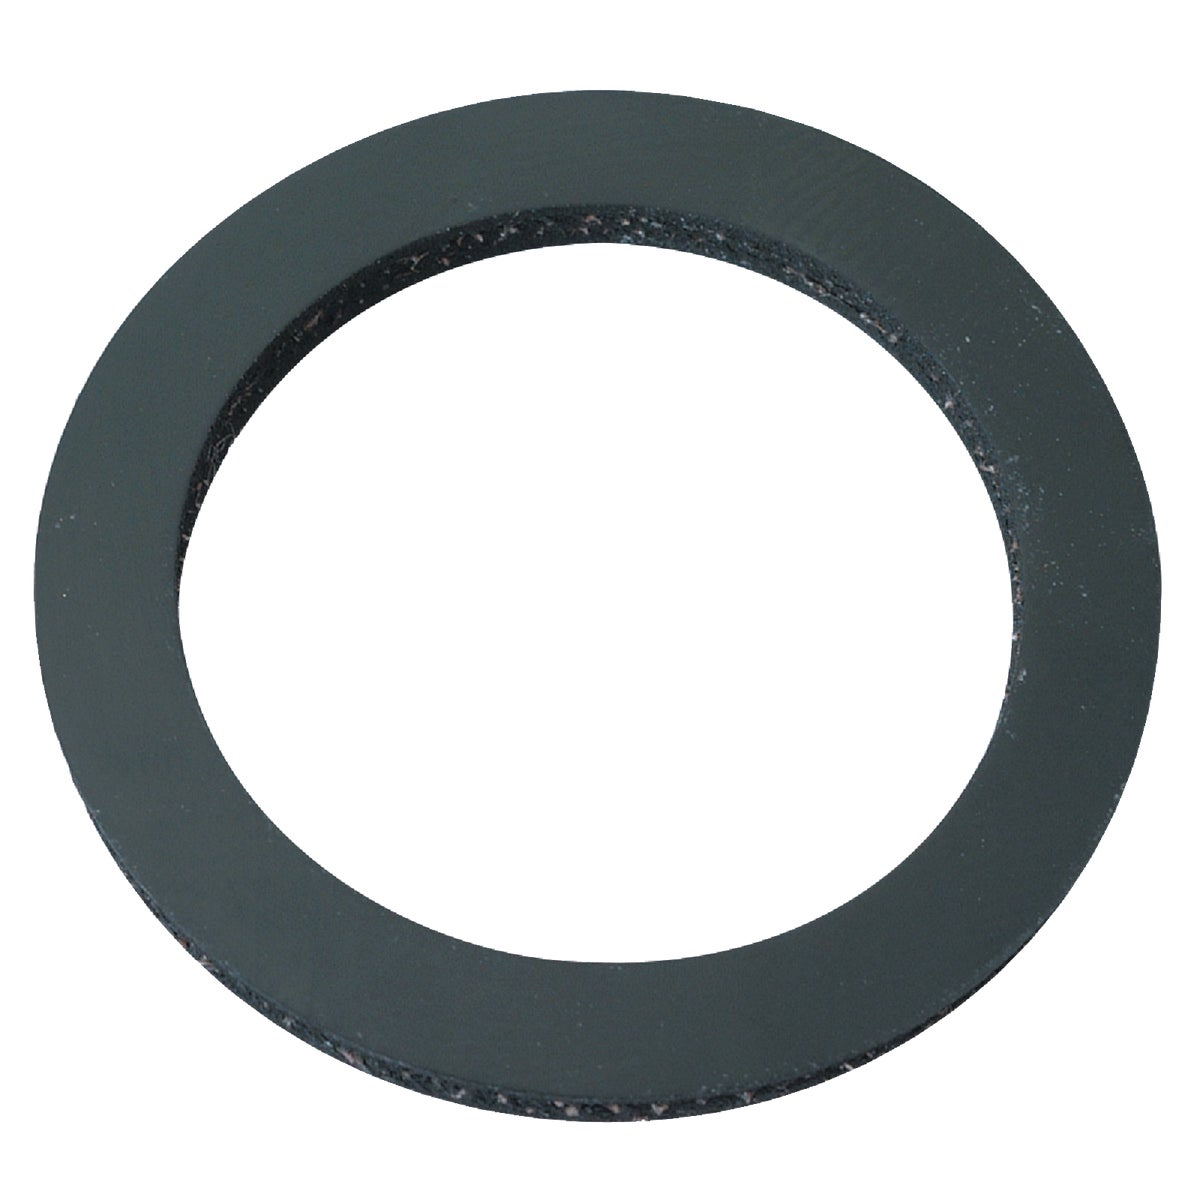 Rubber Tailpiece Washer